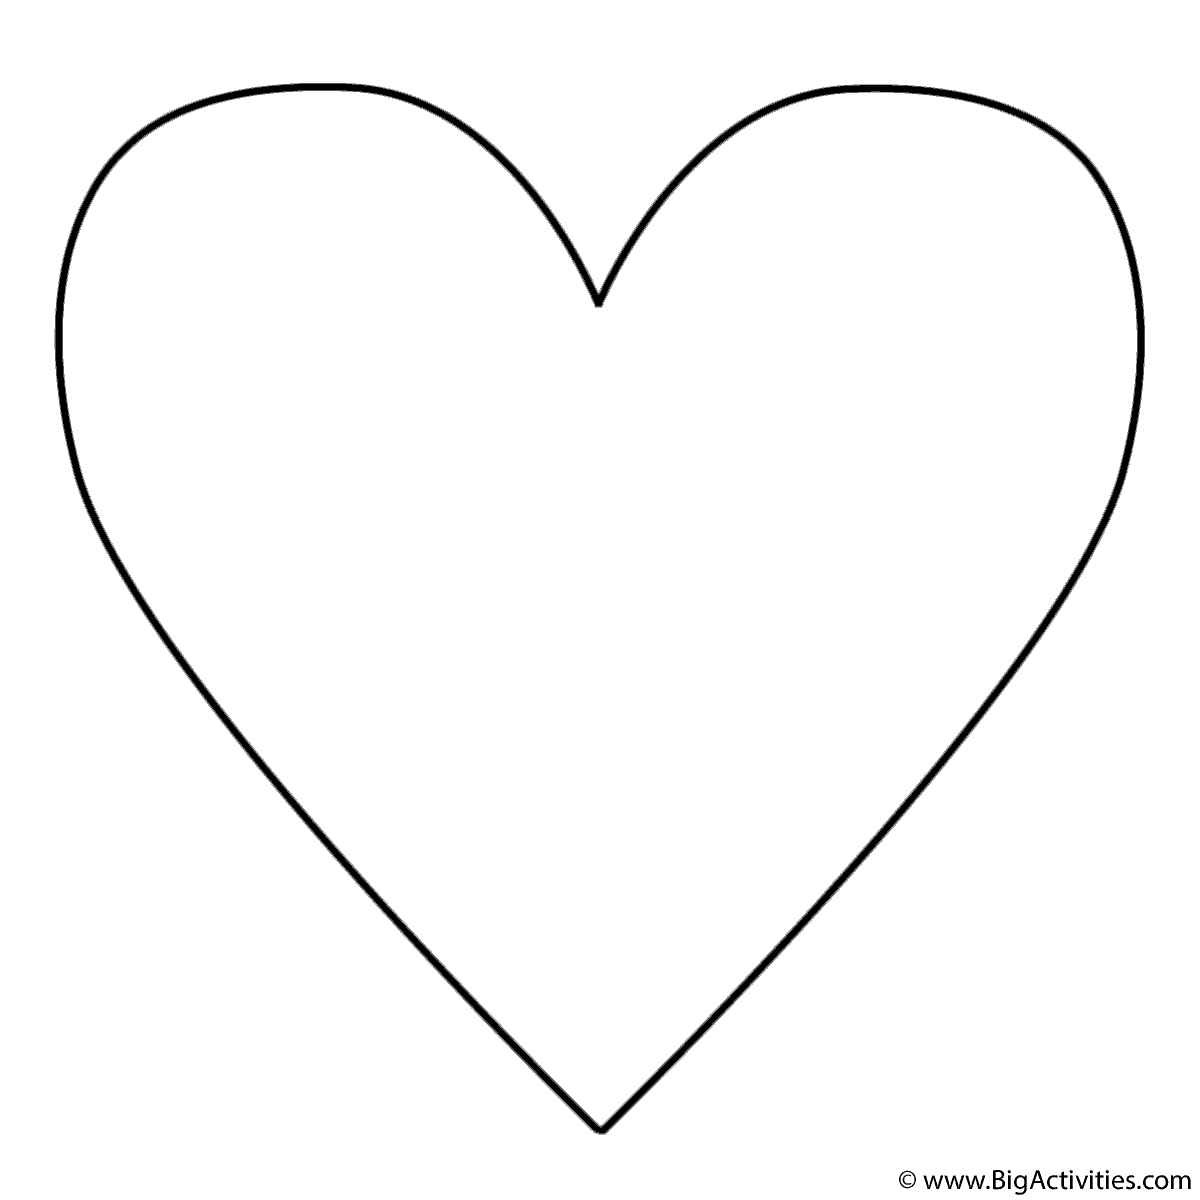 big heart coloring page large20heart colouring pages clipart best clipart best page heart coloring big